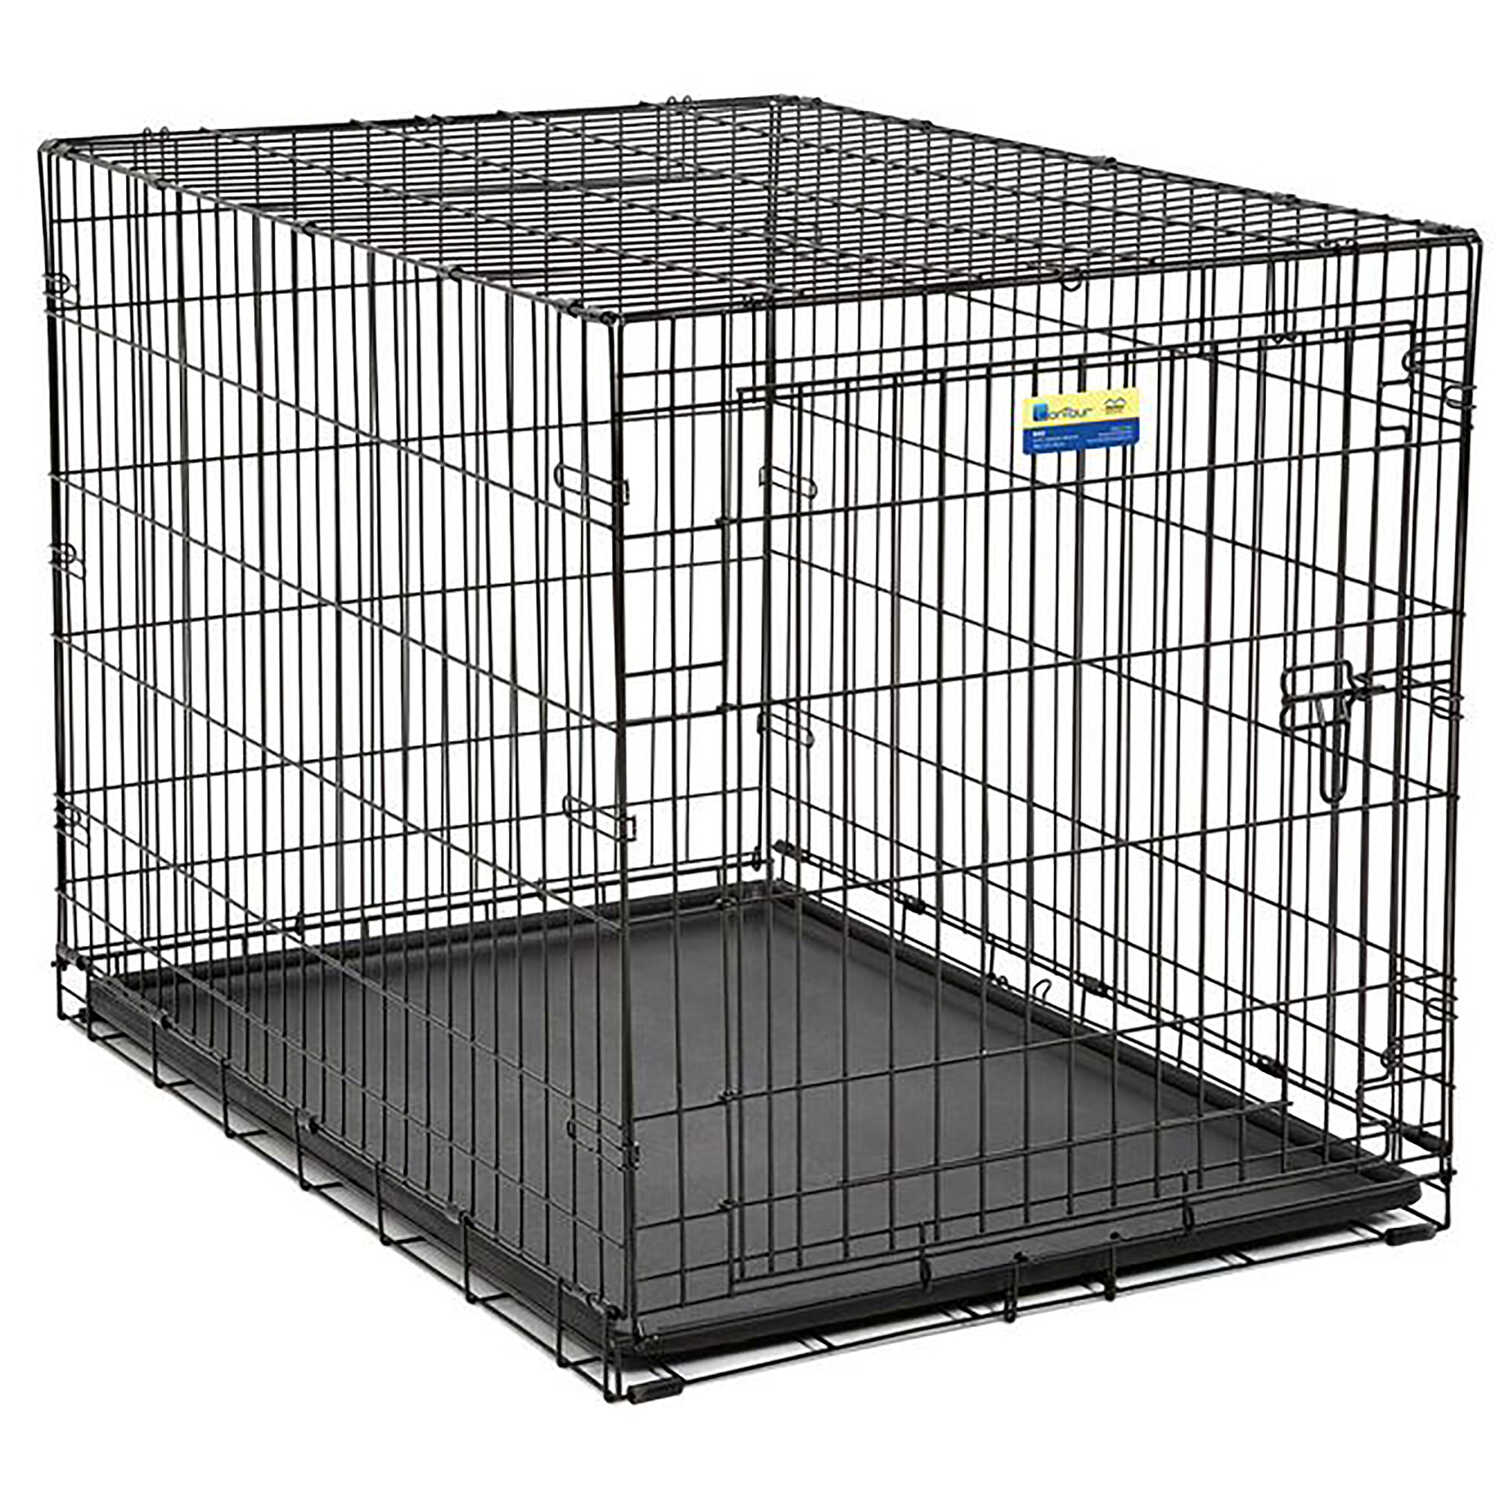 Contour  Large  Steel  Dog Crate  30.6 in. H x 30 in. W